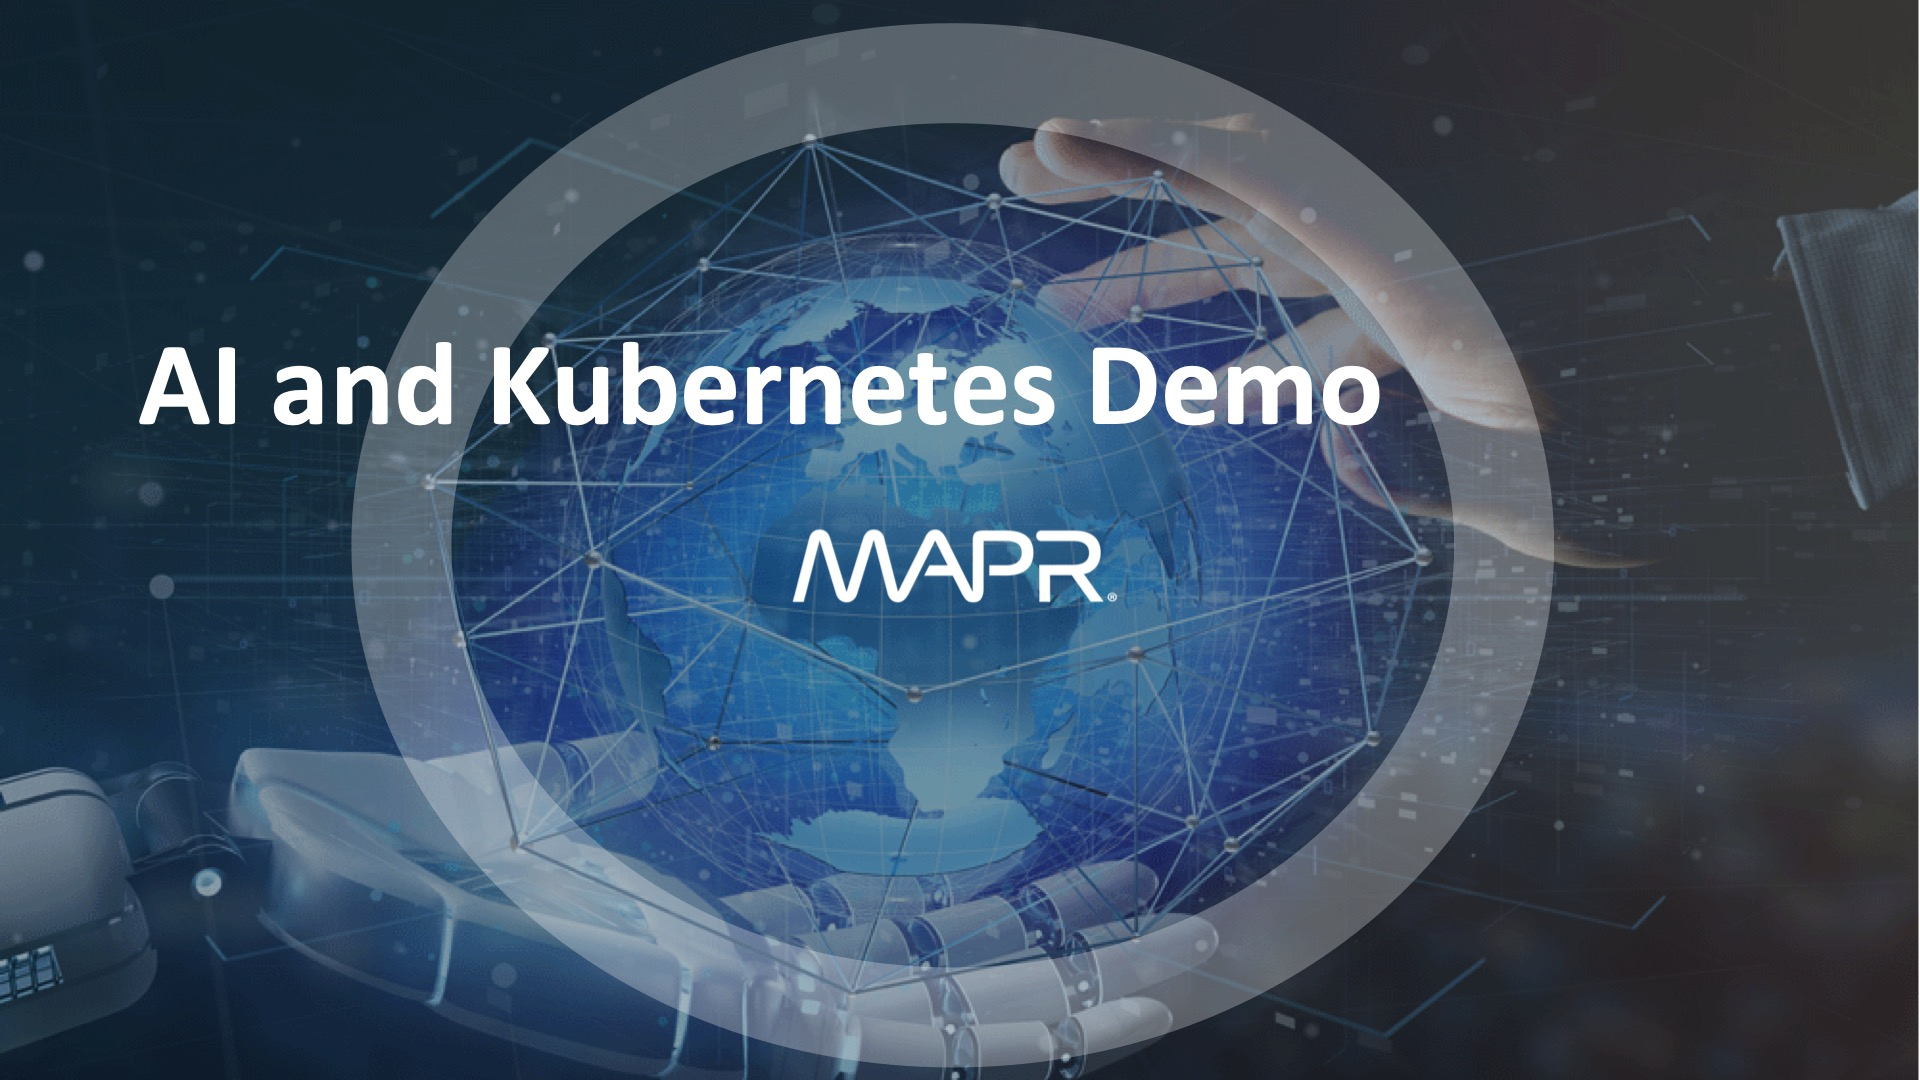 MapR ML/AI Demo with with Kubernetes, Keras, Tensorflow, and Slack